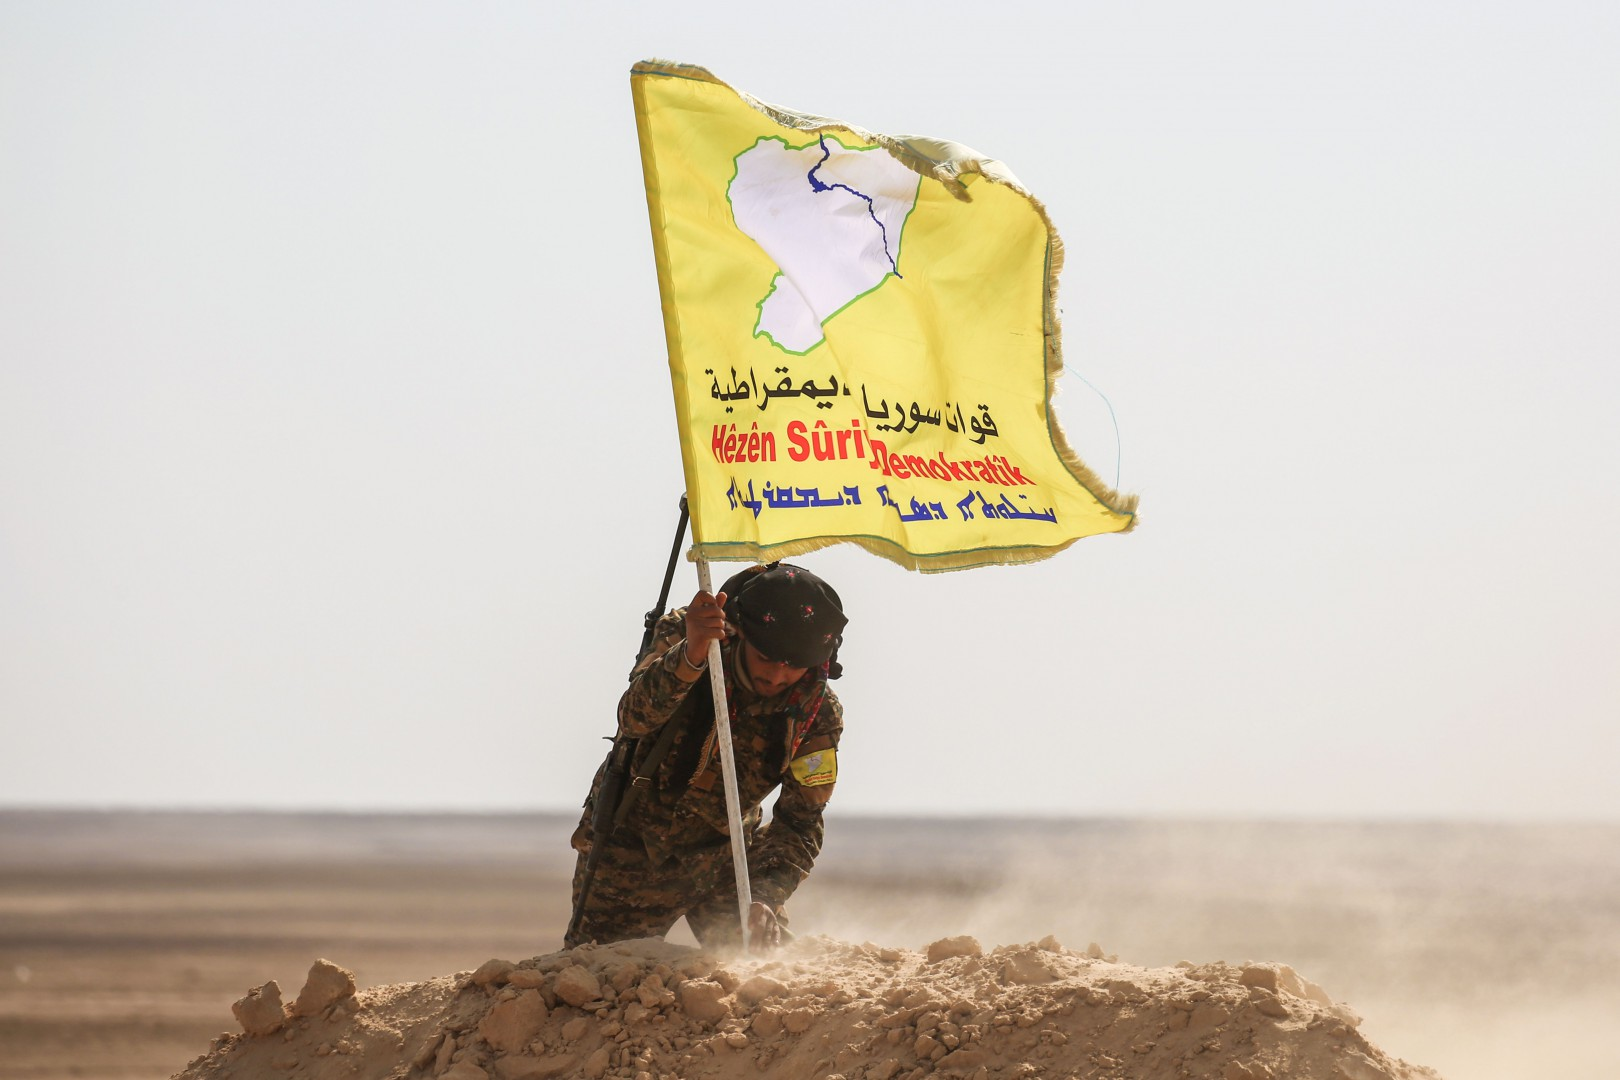 (FILES) In this file photo taken on February 8, 2017, a member of the Syrian Democratic Forces (SDF), made up of US-backed Kurdish and Arab fighters, raises a flag of the SDF near the village of Bir Fawaz, 20 kilometres north of Raqa during their offensive to retake the former the Islamic State (IS) group's stronghold in Syria. - Syria's Kurdish minority, hailed as an indispensable Western ally during the war against the Islamic State group, faces hard bargaining with Damascus now that Washington is winding down its campaign. (Photo by DELIL SOULEIMAN / AFP)